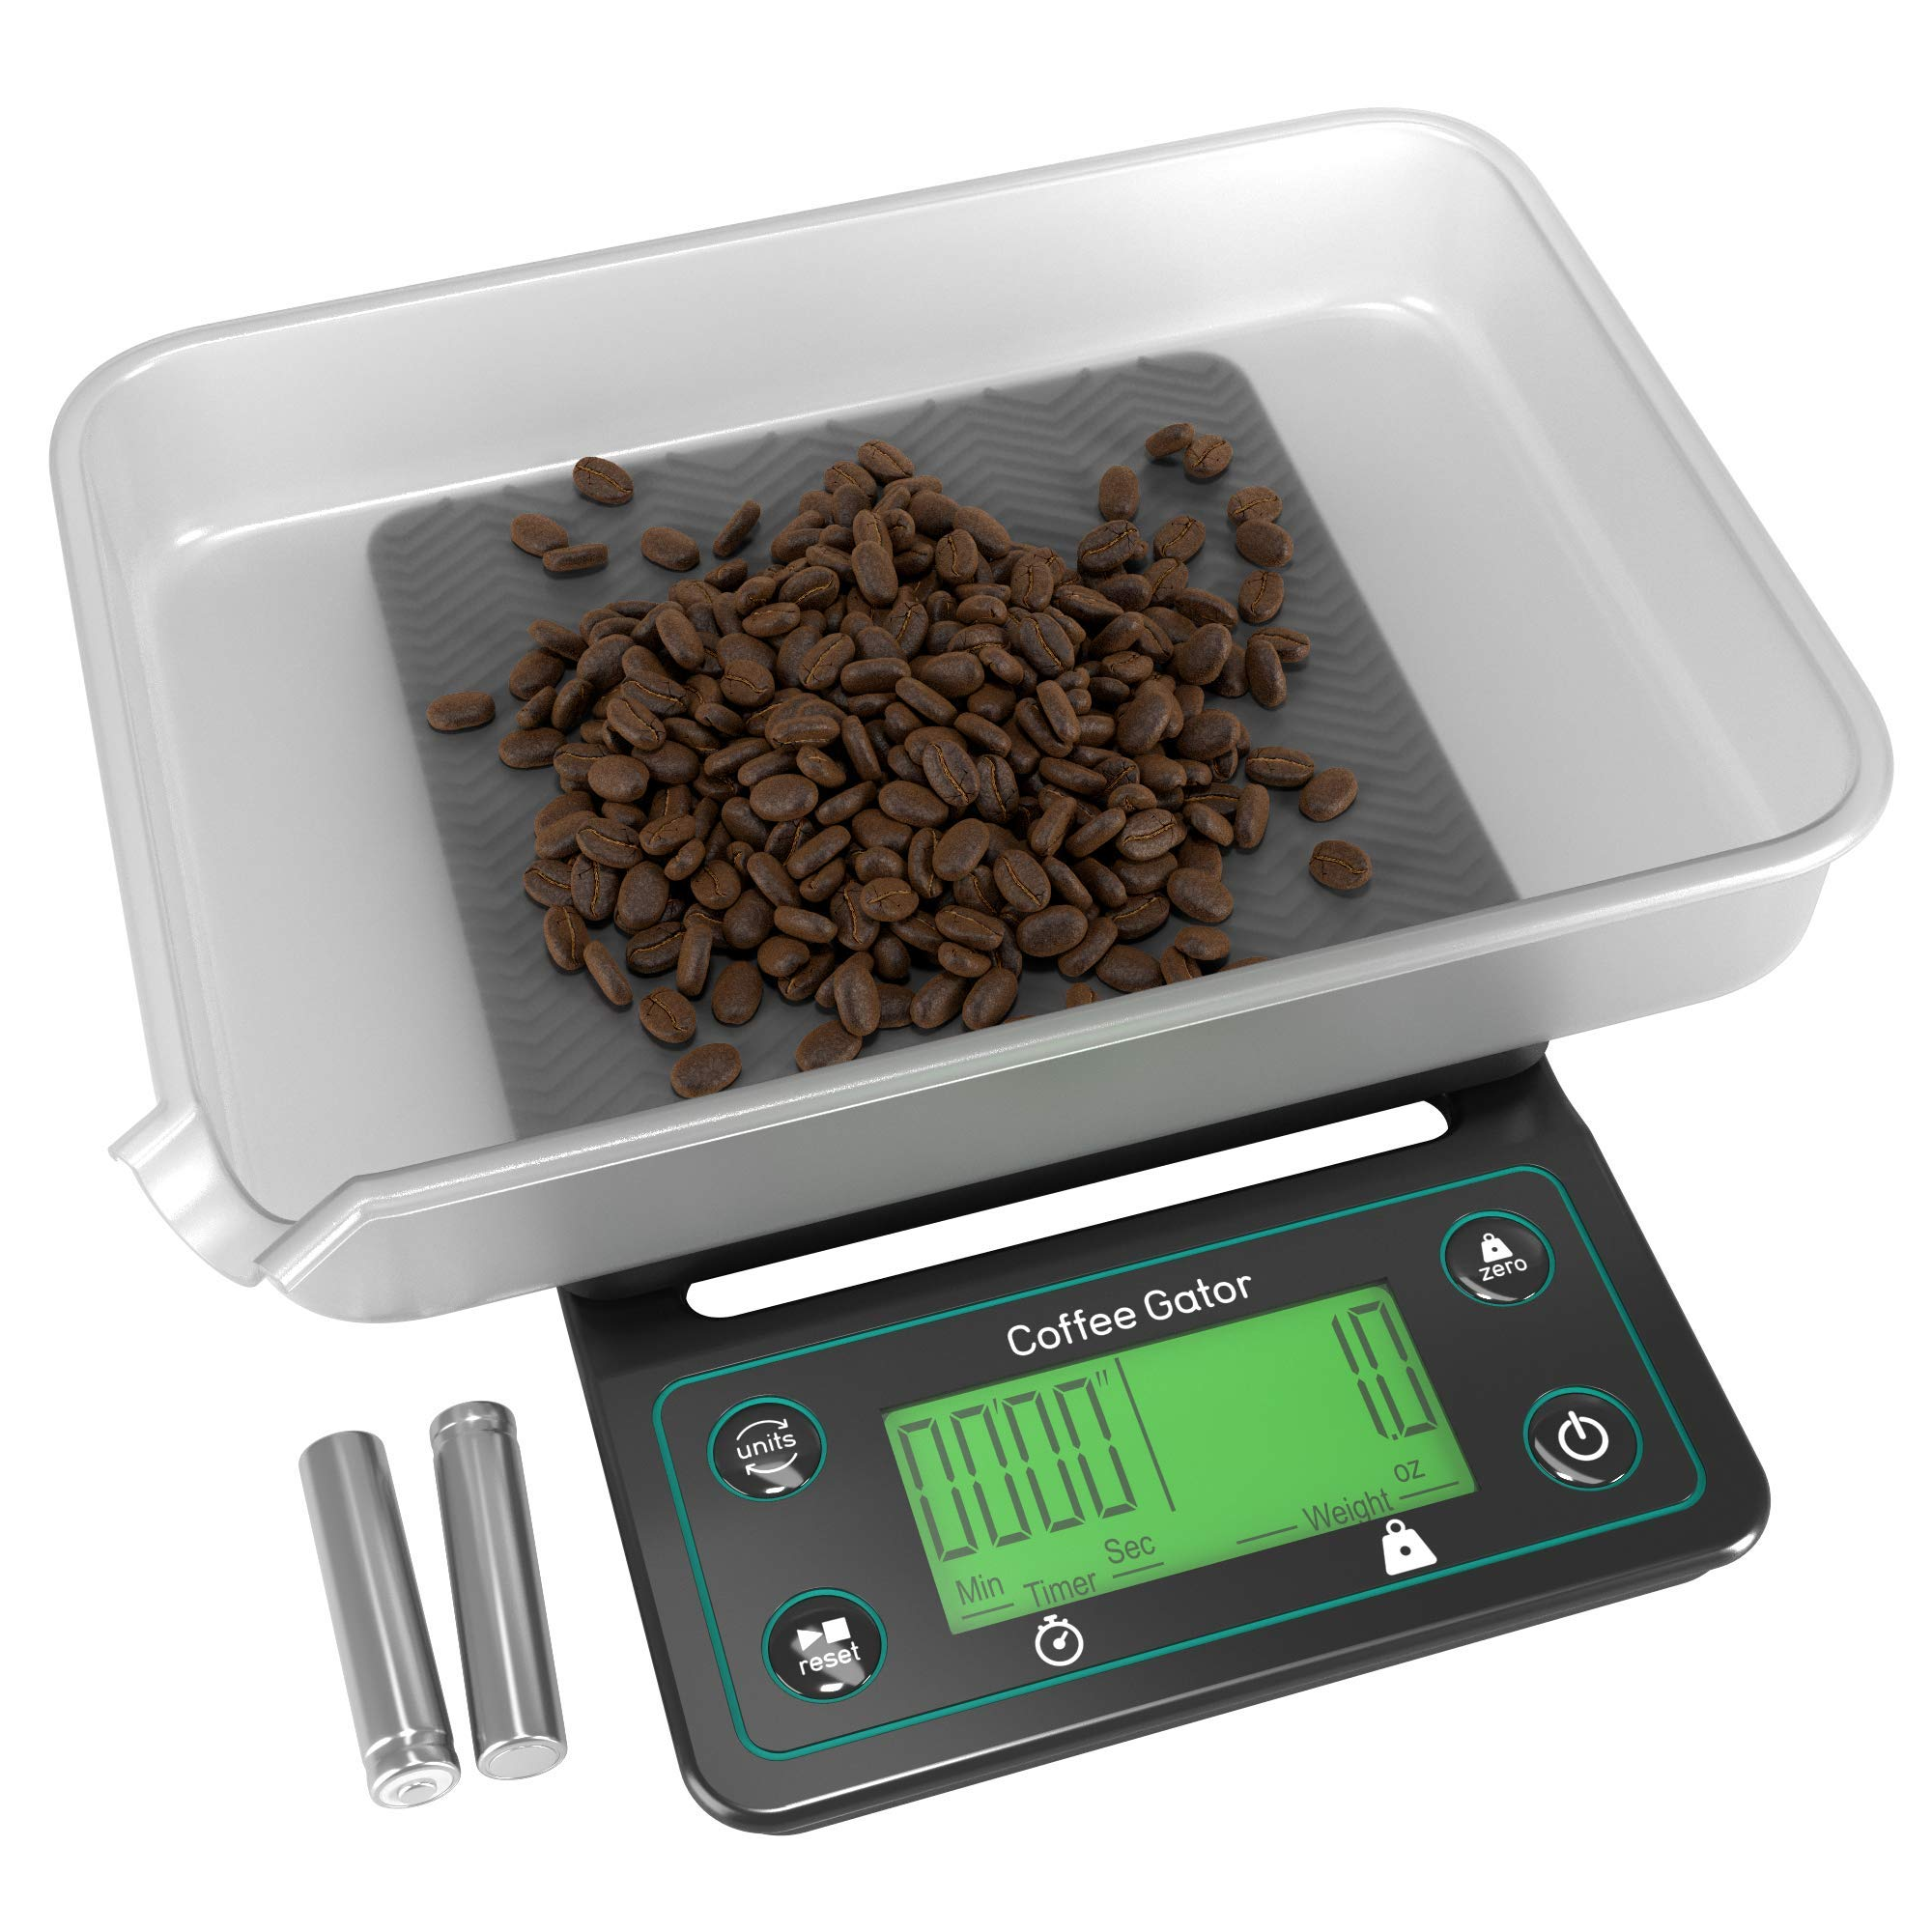 Coffee Gator Digital Scale with Timer - Large, Bright LCD Display - Multifunction Weighing Scale for Coffee Brewing, Food, Drink and General Kitchen Use by Coffee Gator